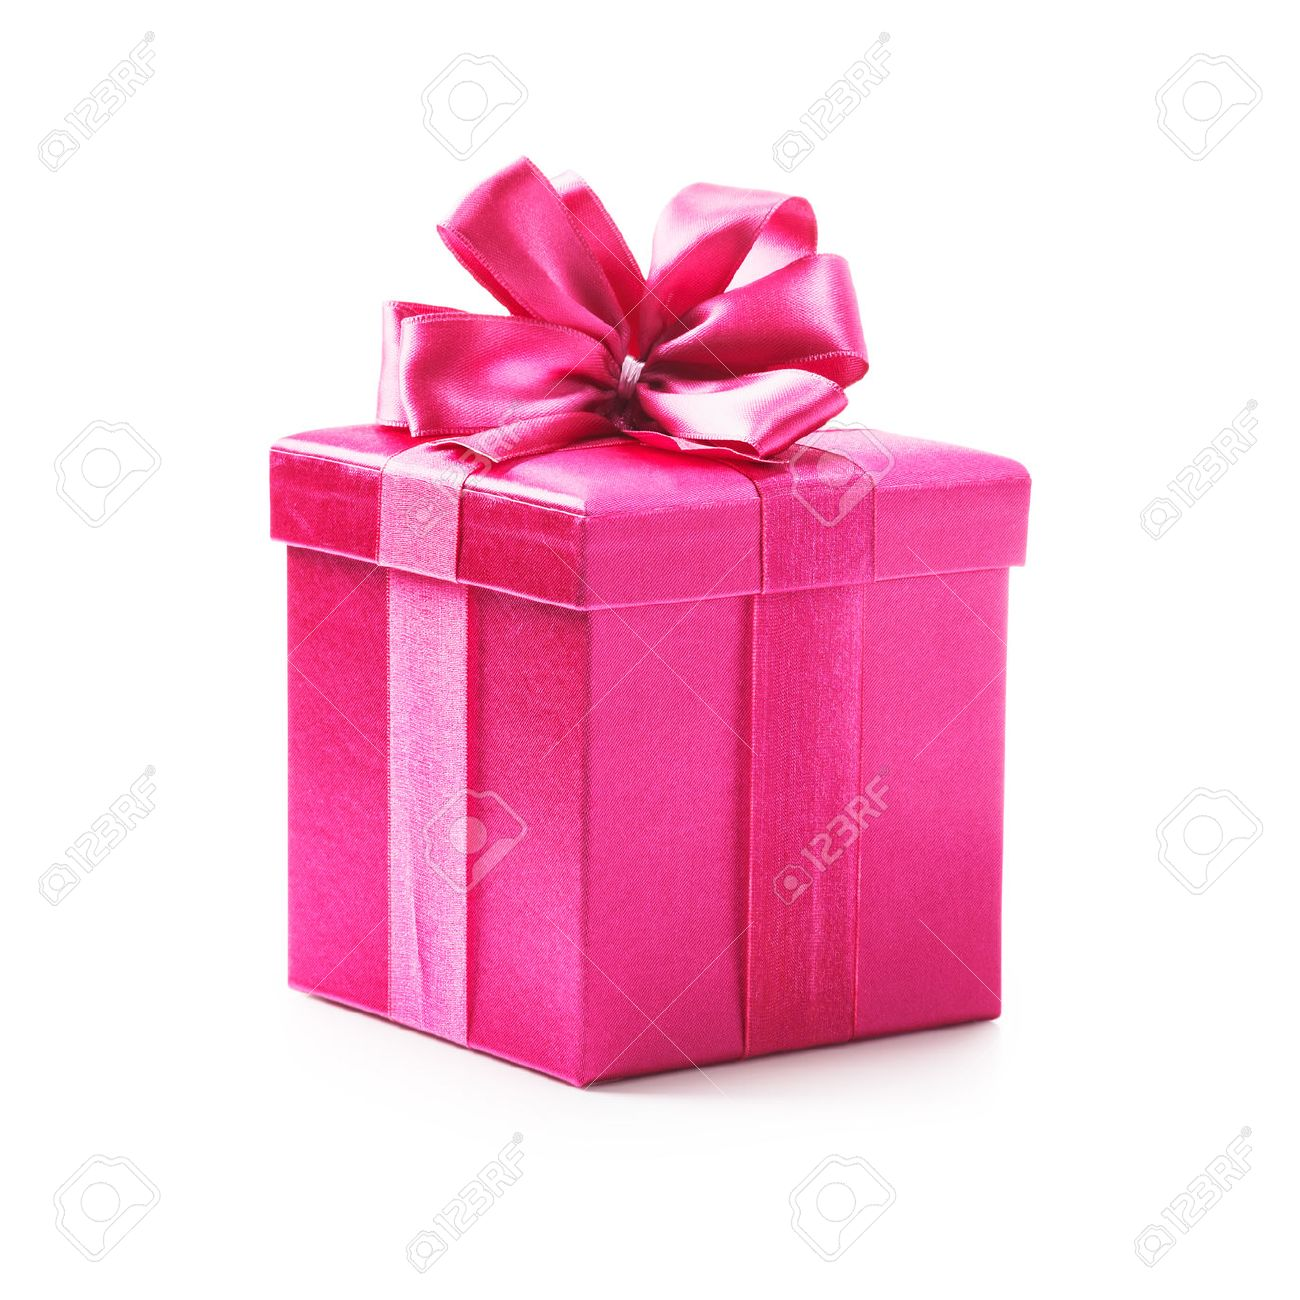 Gift Box Pink Gift Box With Ribbon Bow Holiday Present Object Isolated